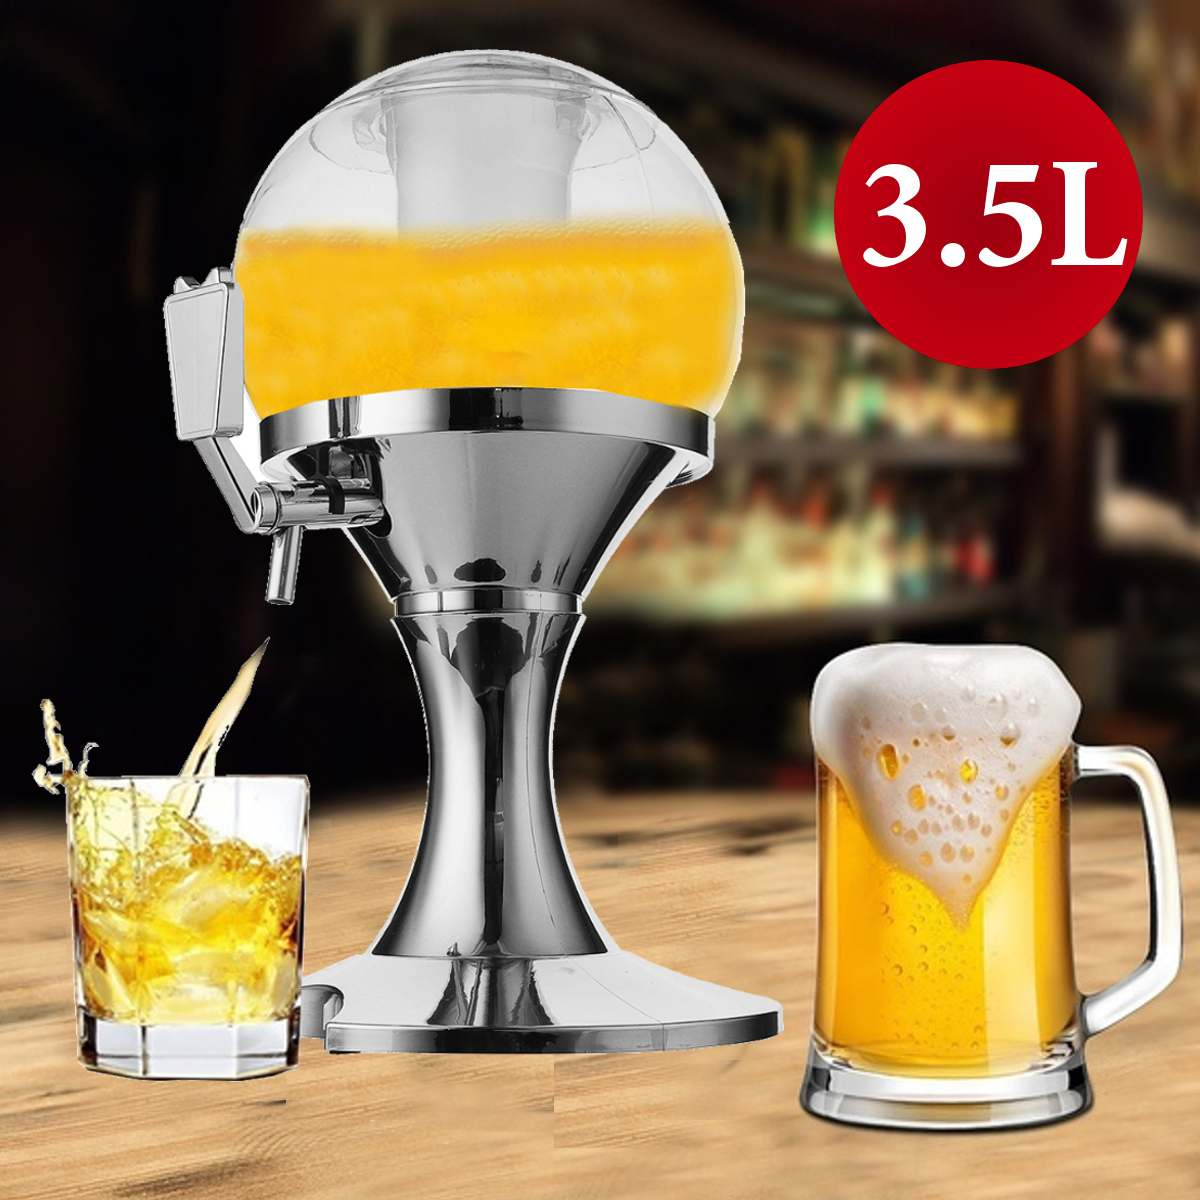 3.5L Beer Container Dispenser Pourer Bar Beverage Beer Wine Tower Machine Ice Core Container Bar Tool